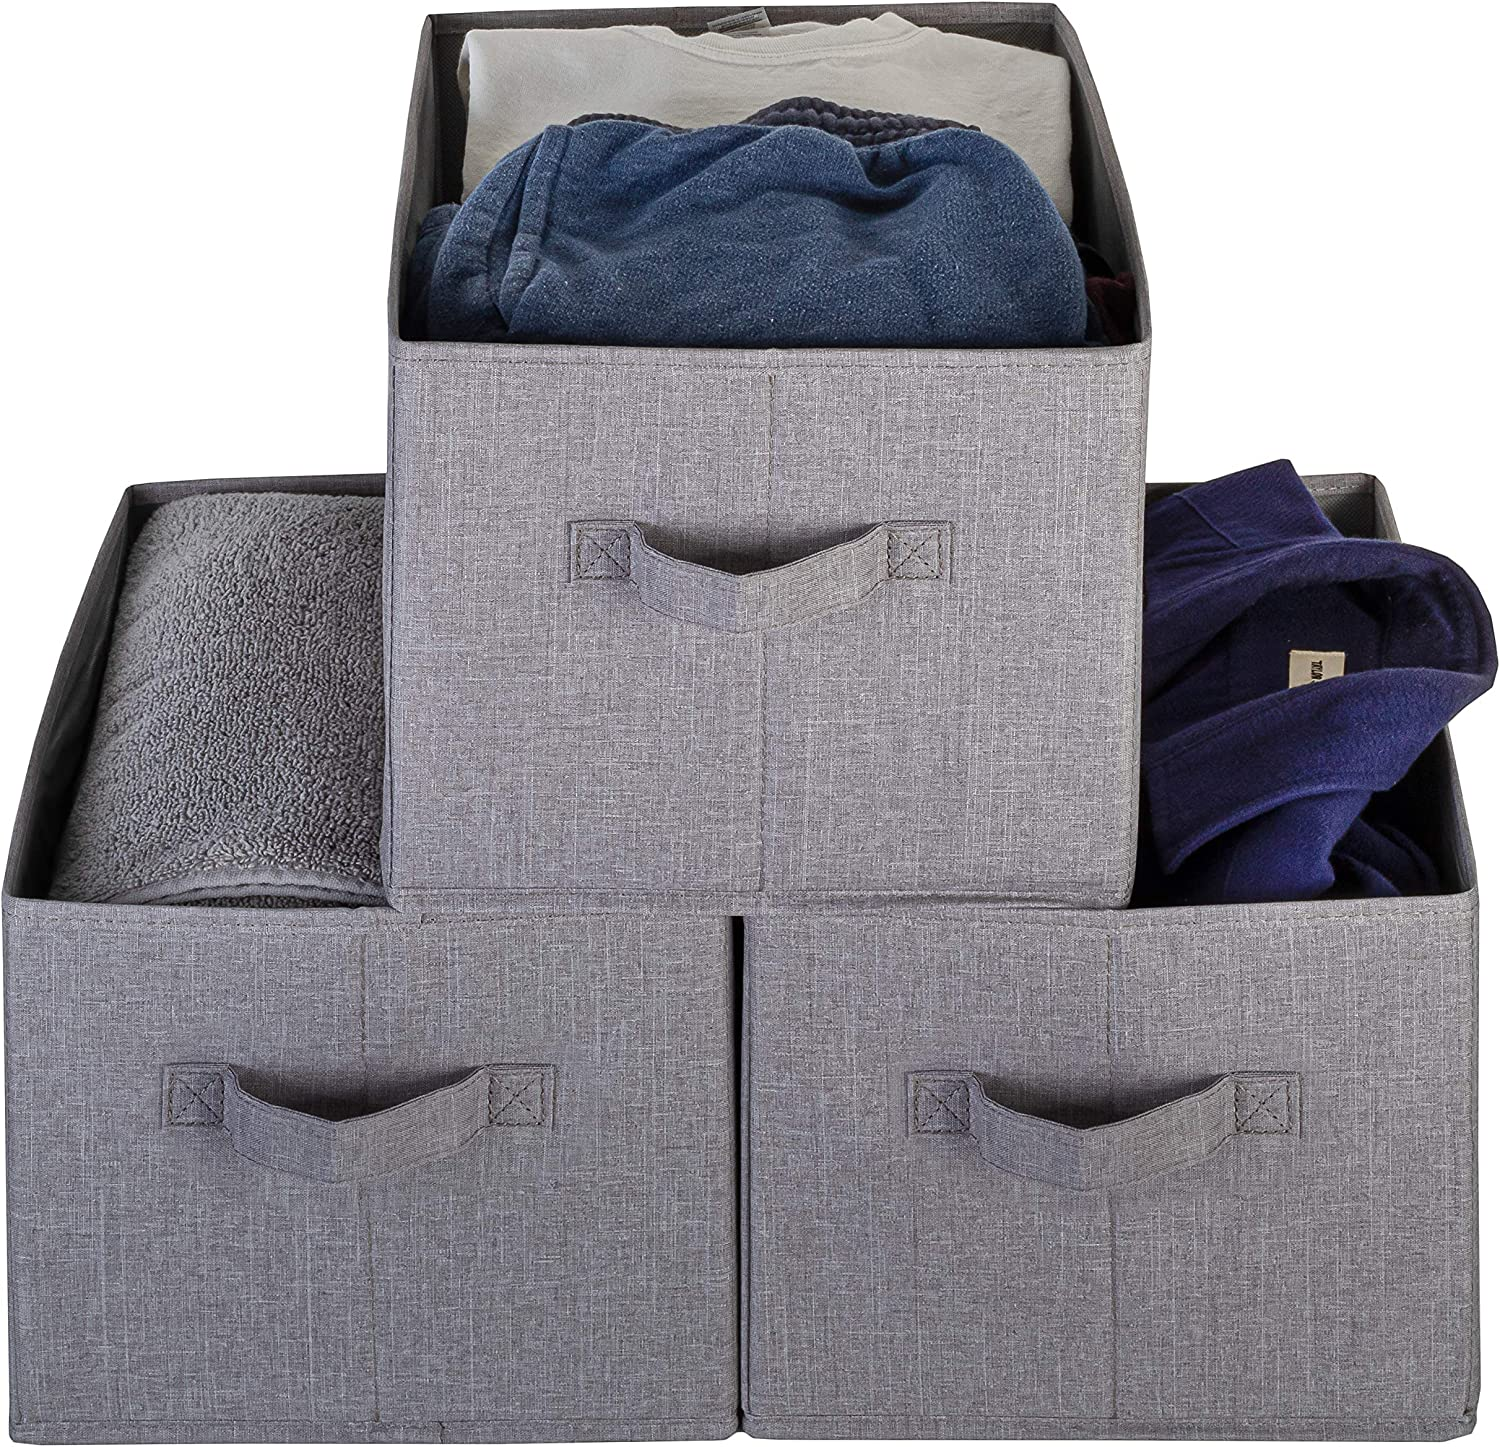 Foldable Durable and Sturdy Storage Bins Basket Cube Shelf Organizer Grey Pomatree Large Storage Baskets Cationic Fabric Organizing Basket Bin For Closet /& Shelves Organization 4 Pack